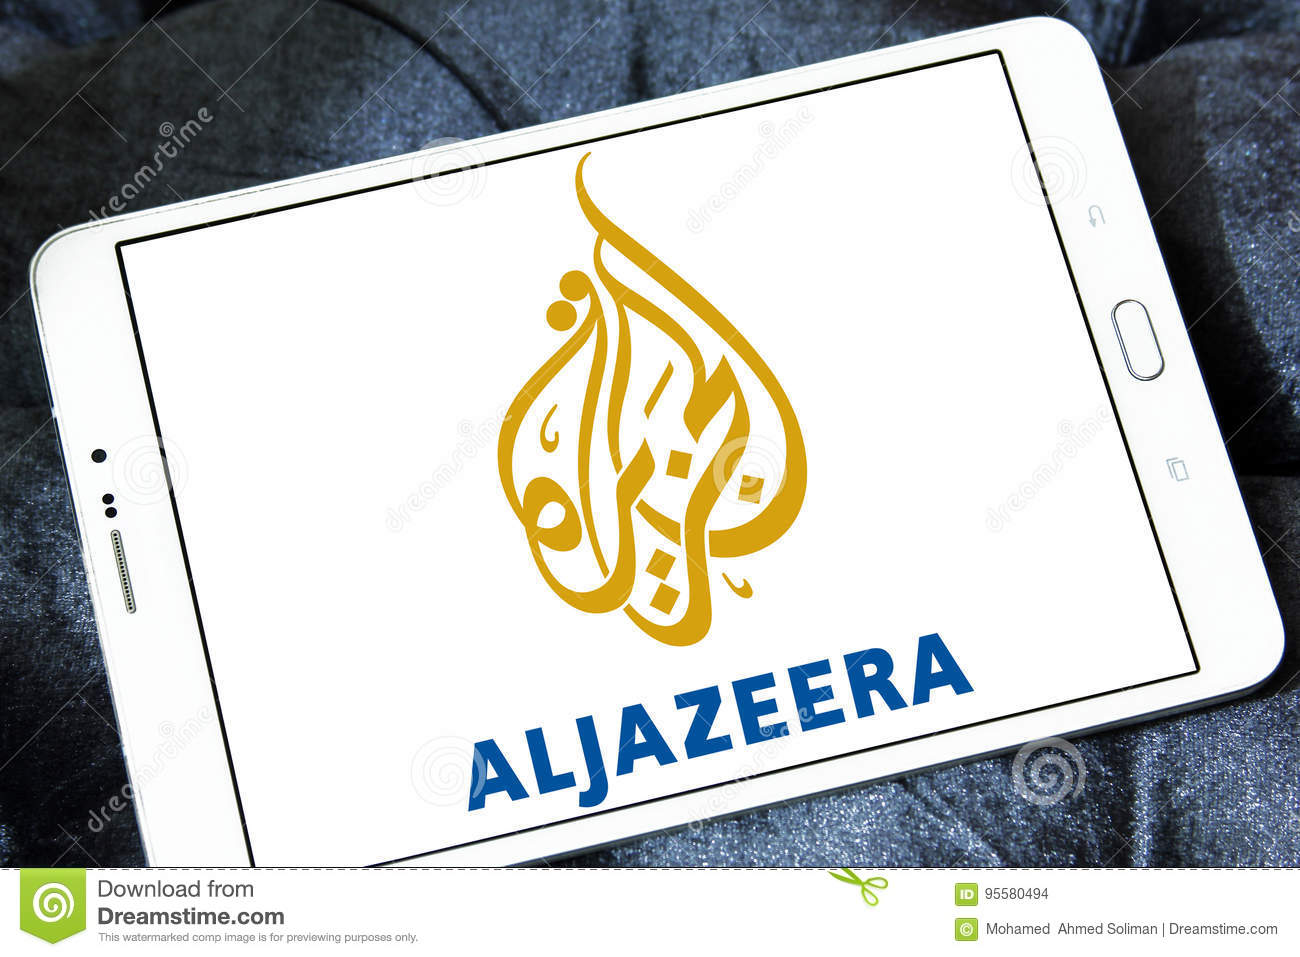 Aljazeera news channel logo